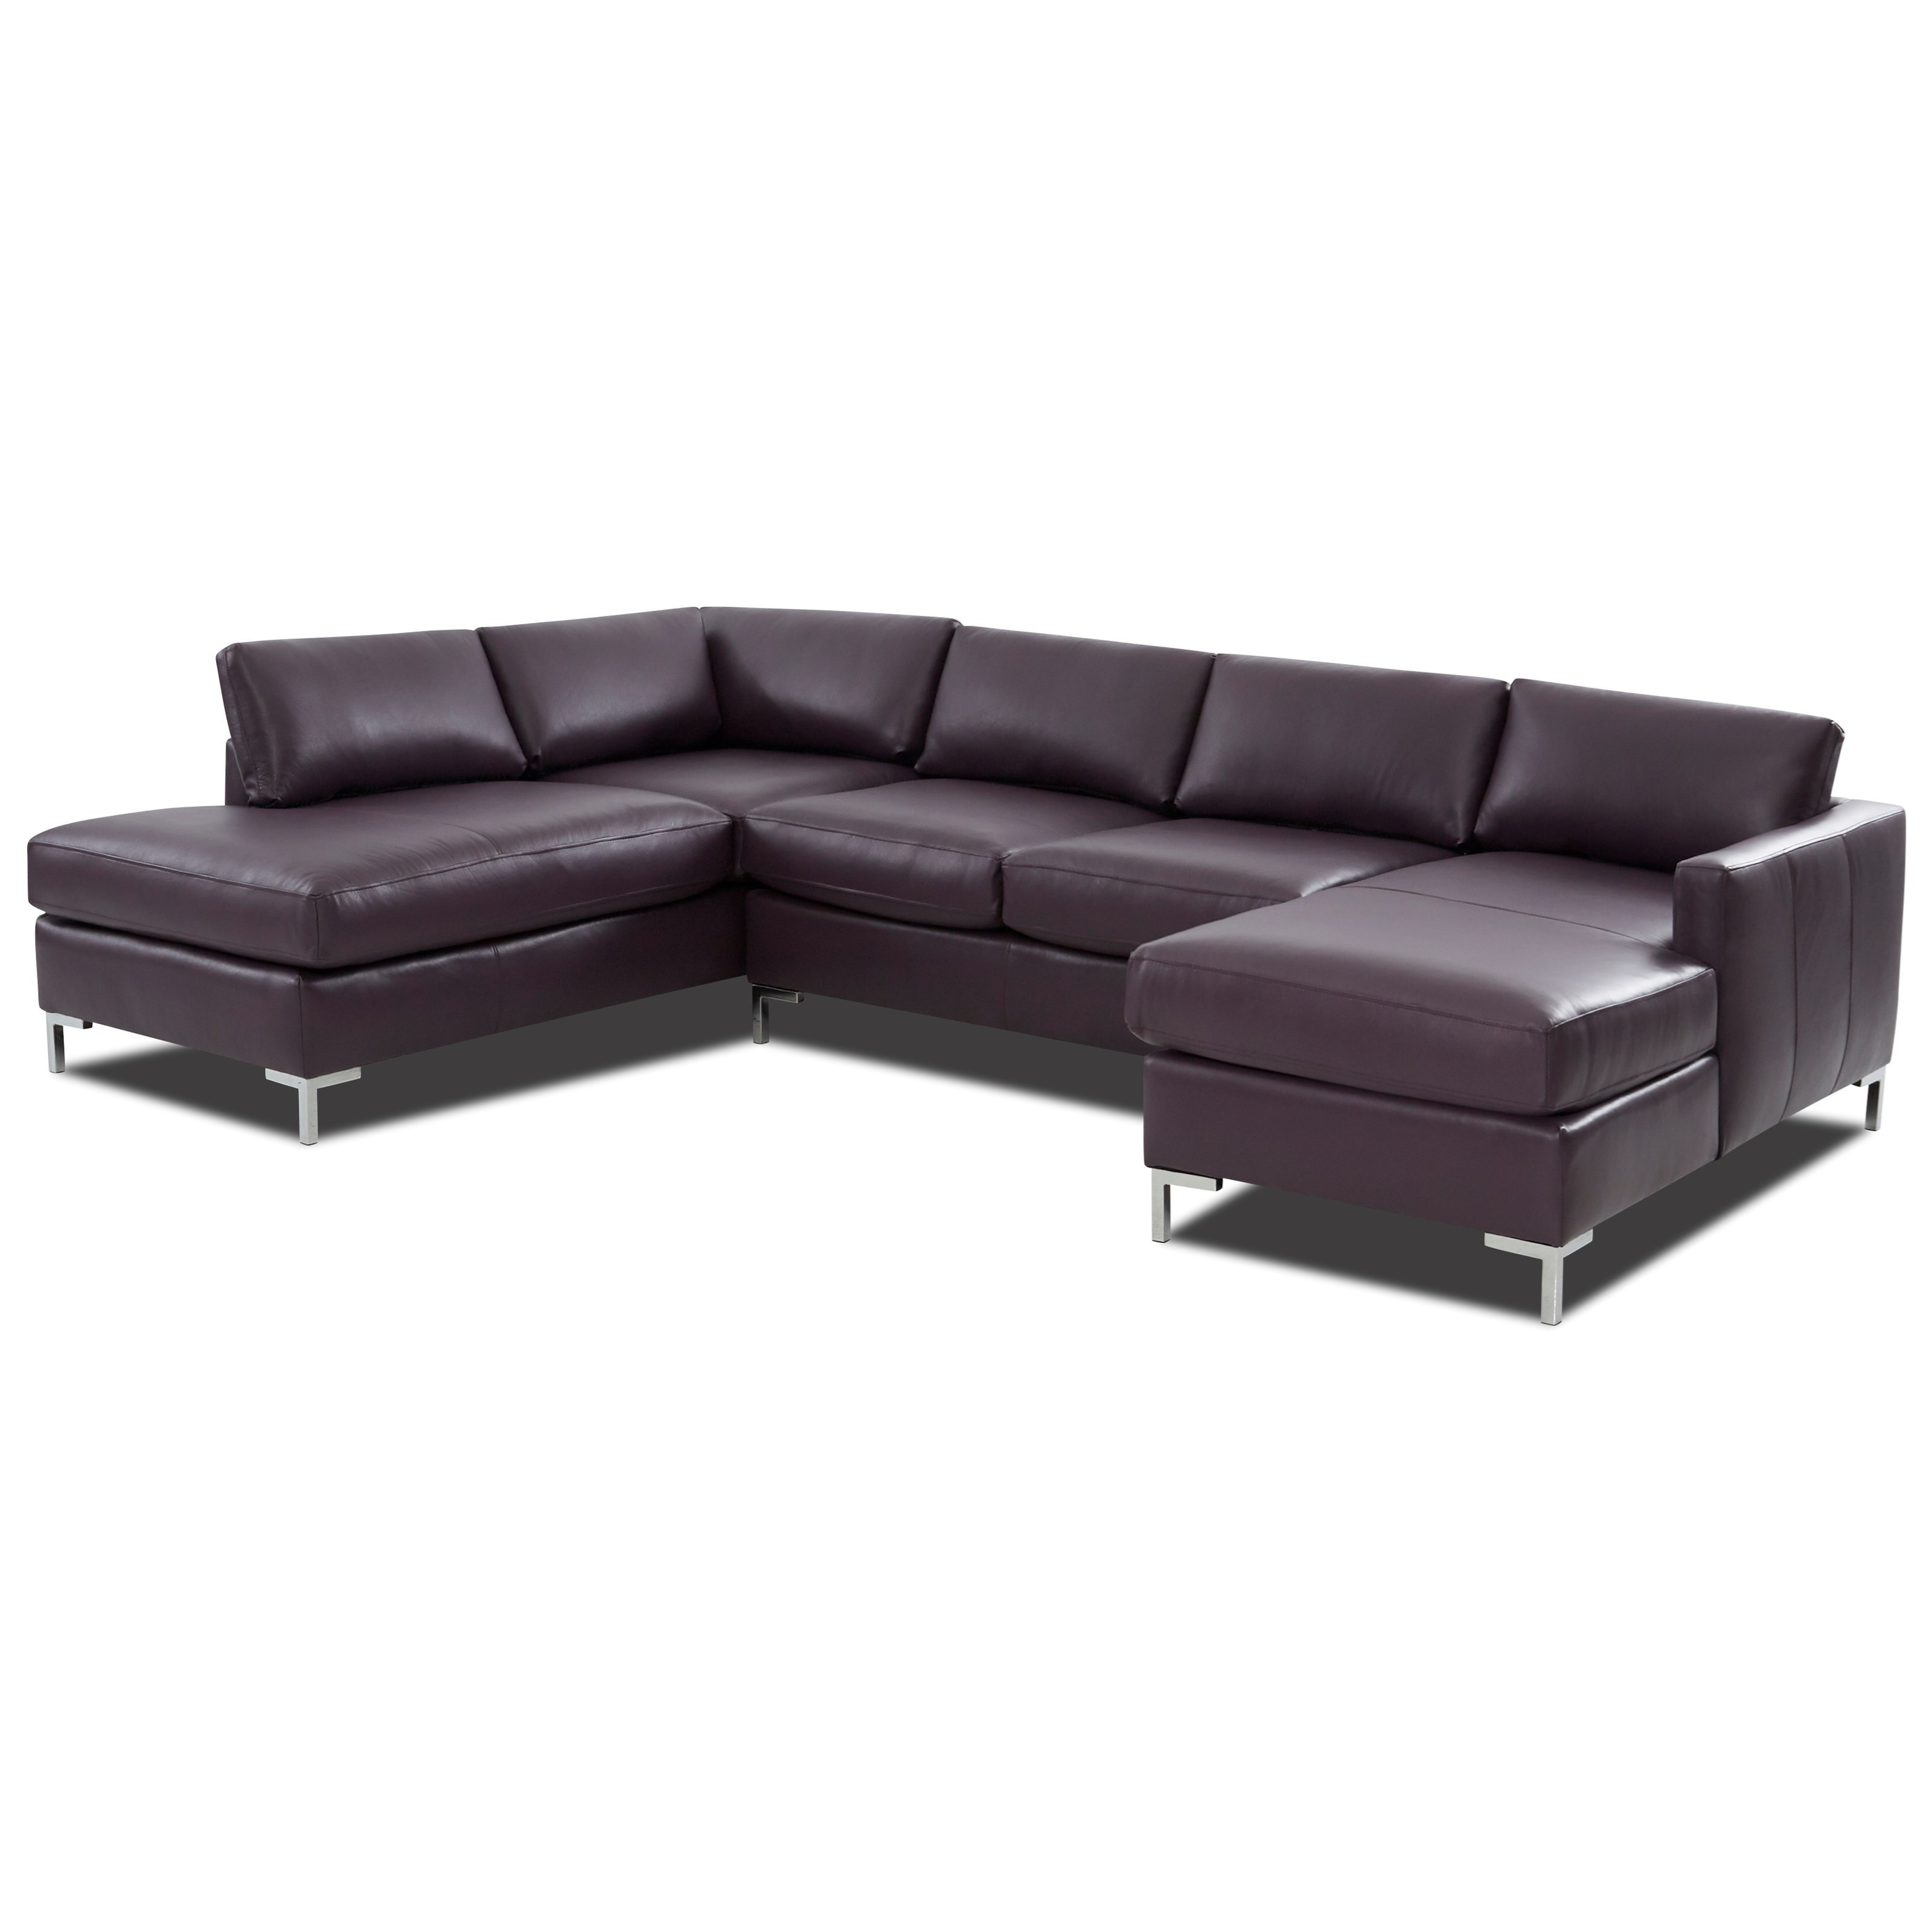 4-Seat Sectional Sofa w/ LAF Sofa Chaise